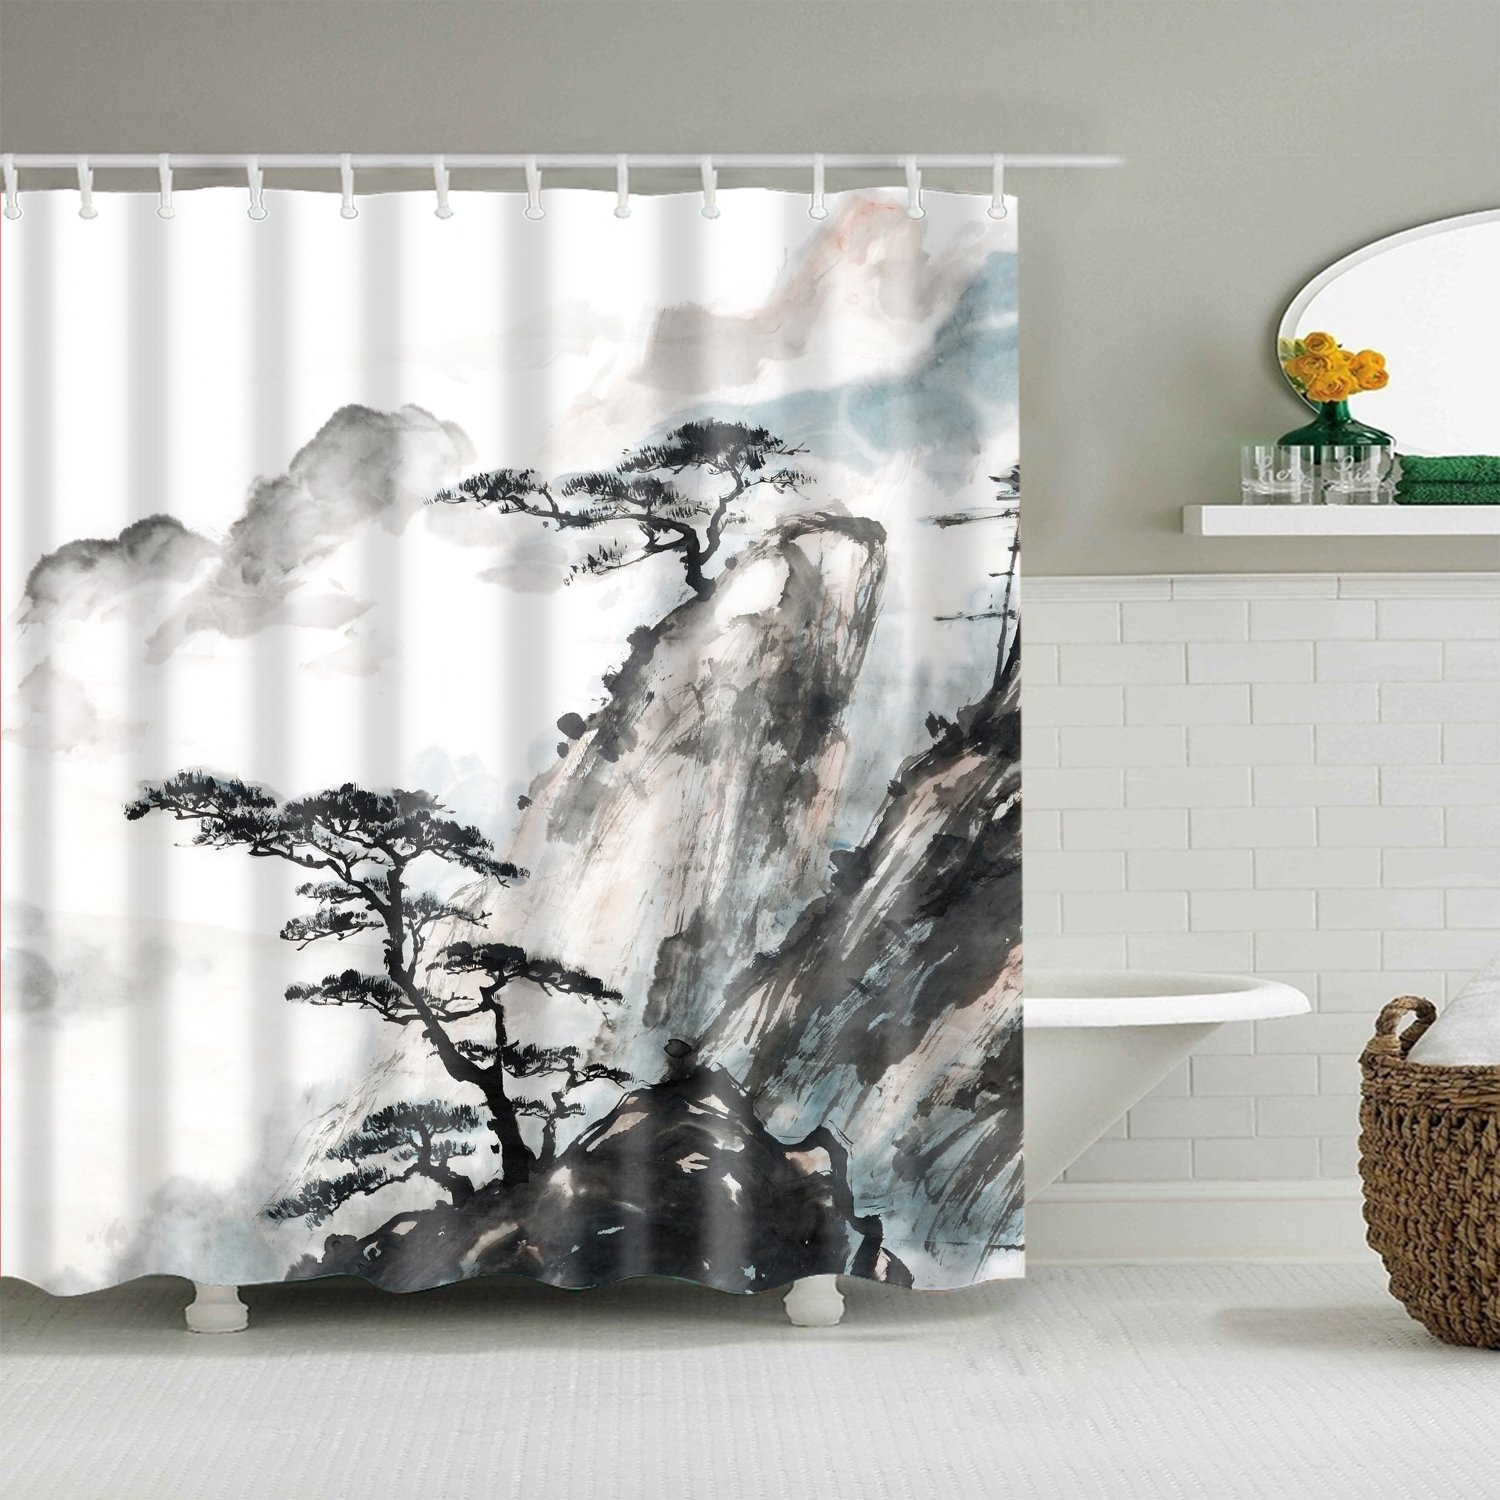 Chinese Landscape Painting Pine Tree Shower Curtain Bathroom Decor